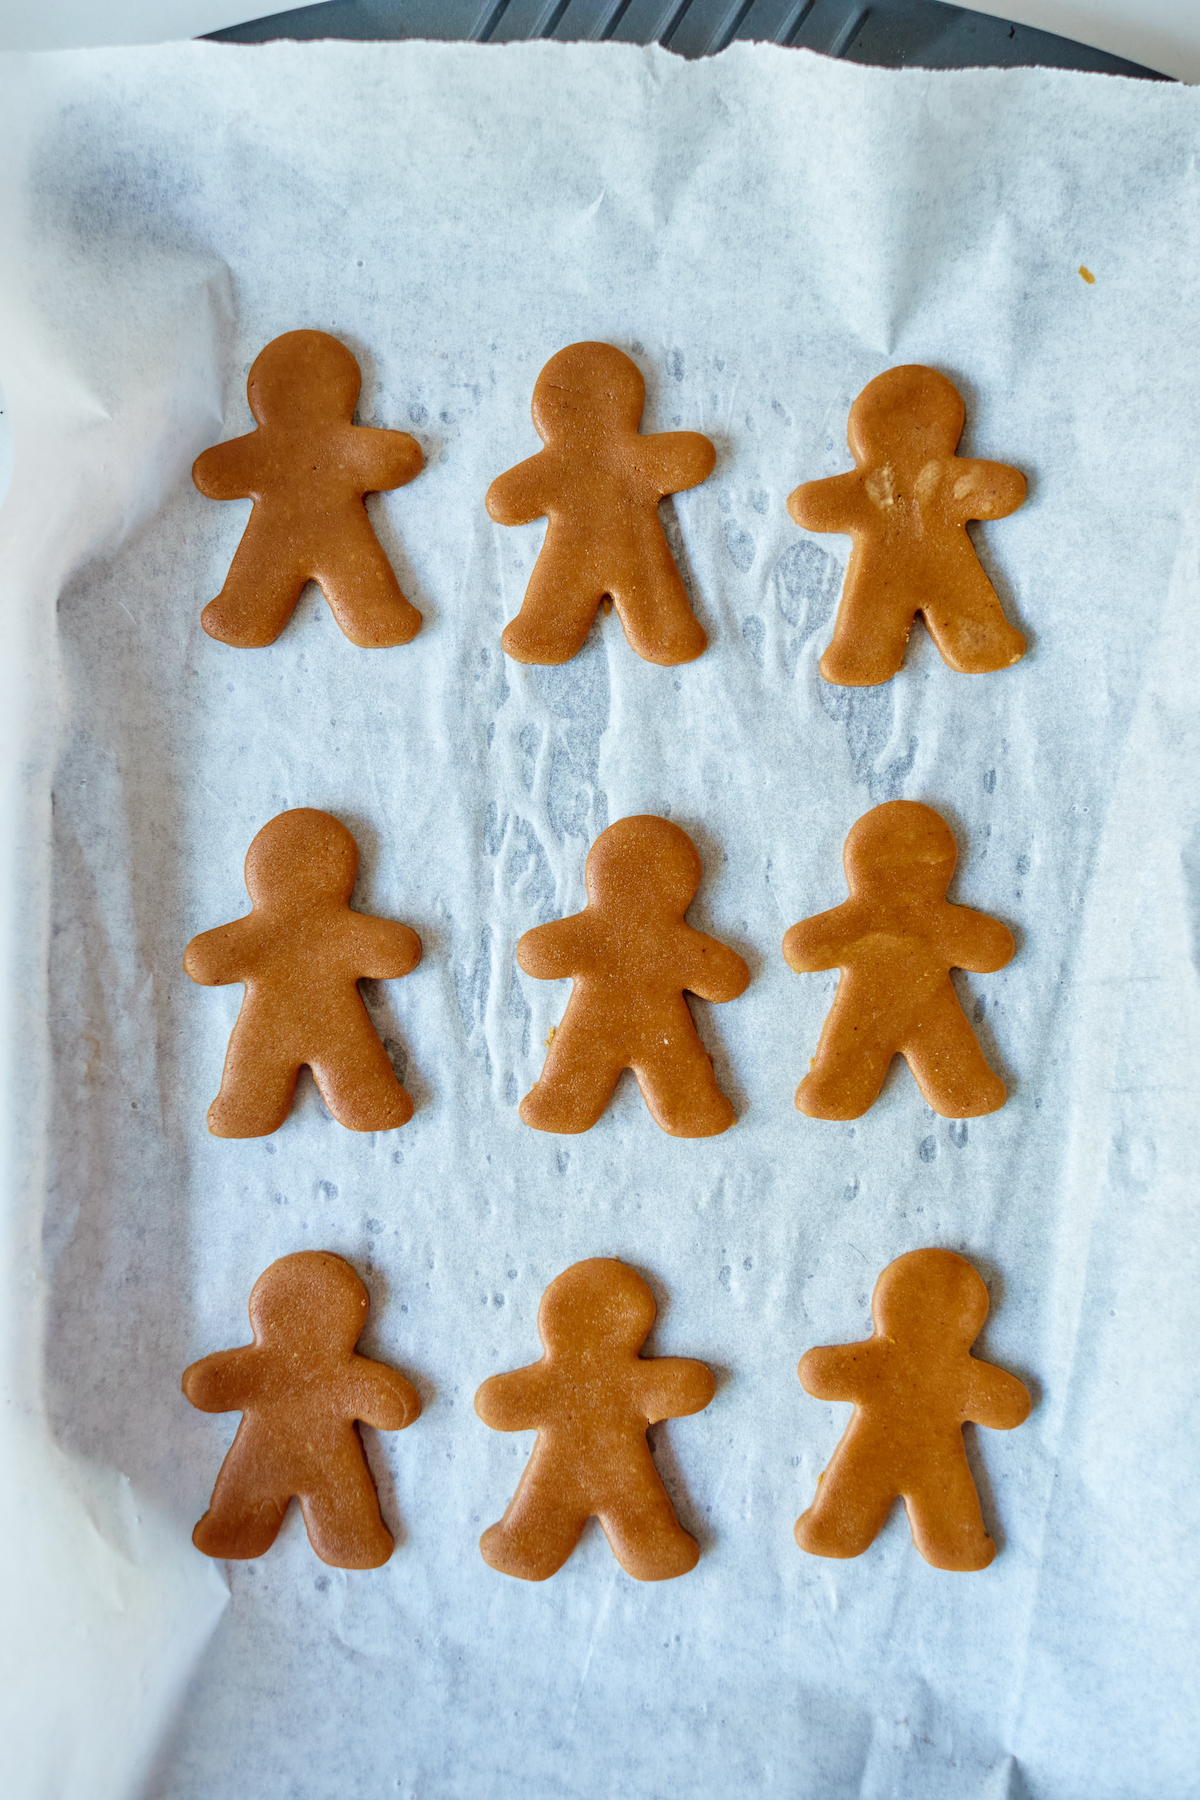 top down view of gingerbread man cookies on a baking tray